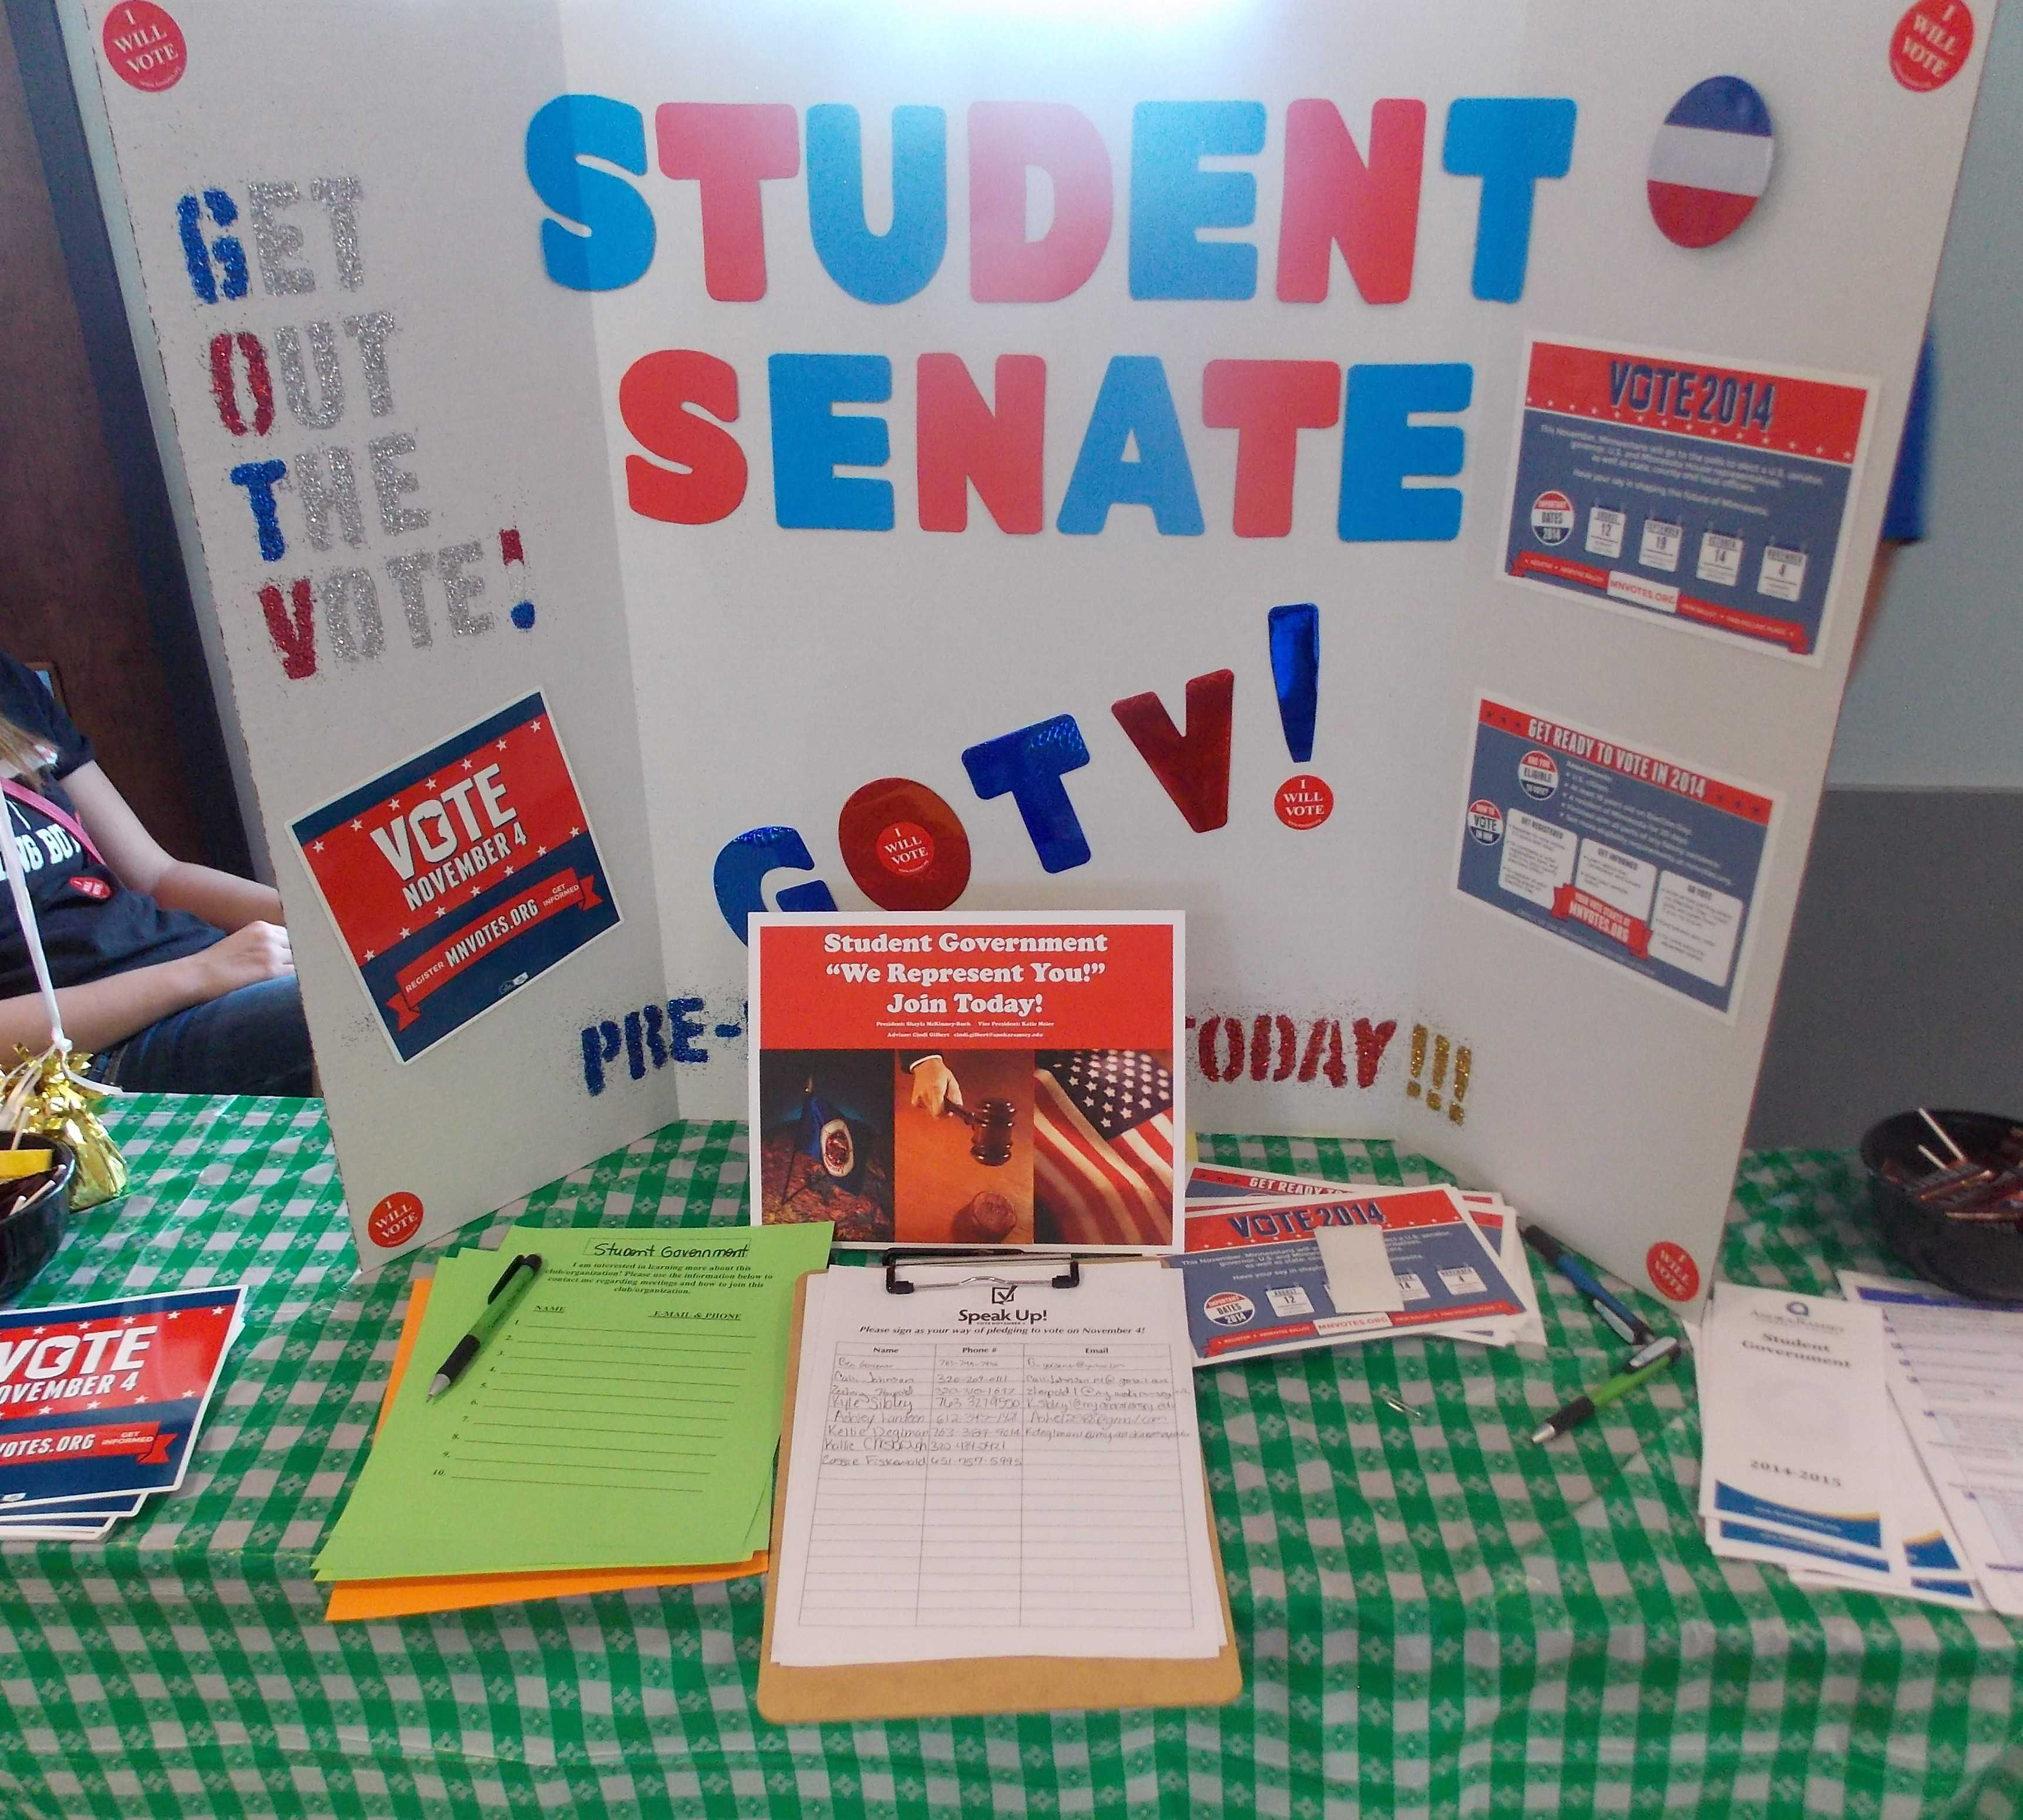 Cambridge Student Government registers students to vote at a recent Club Fair